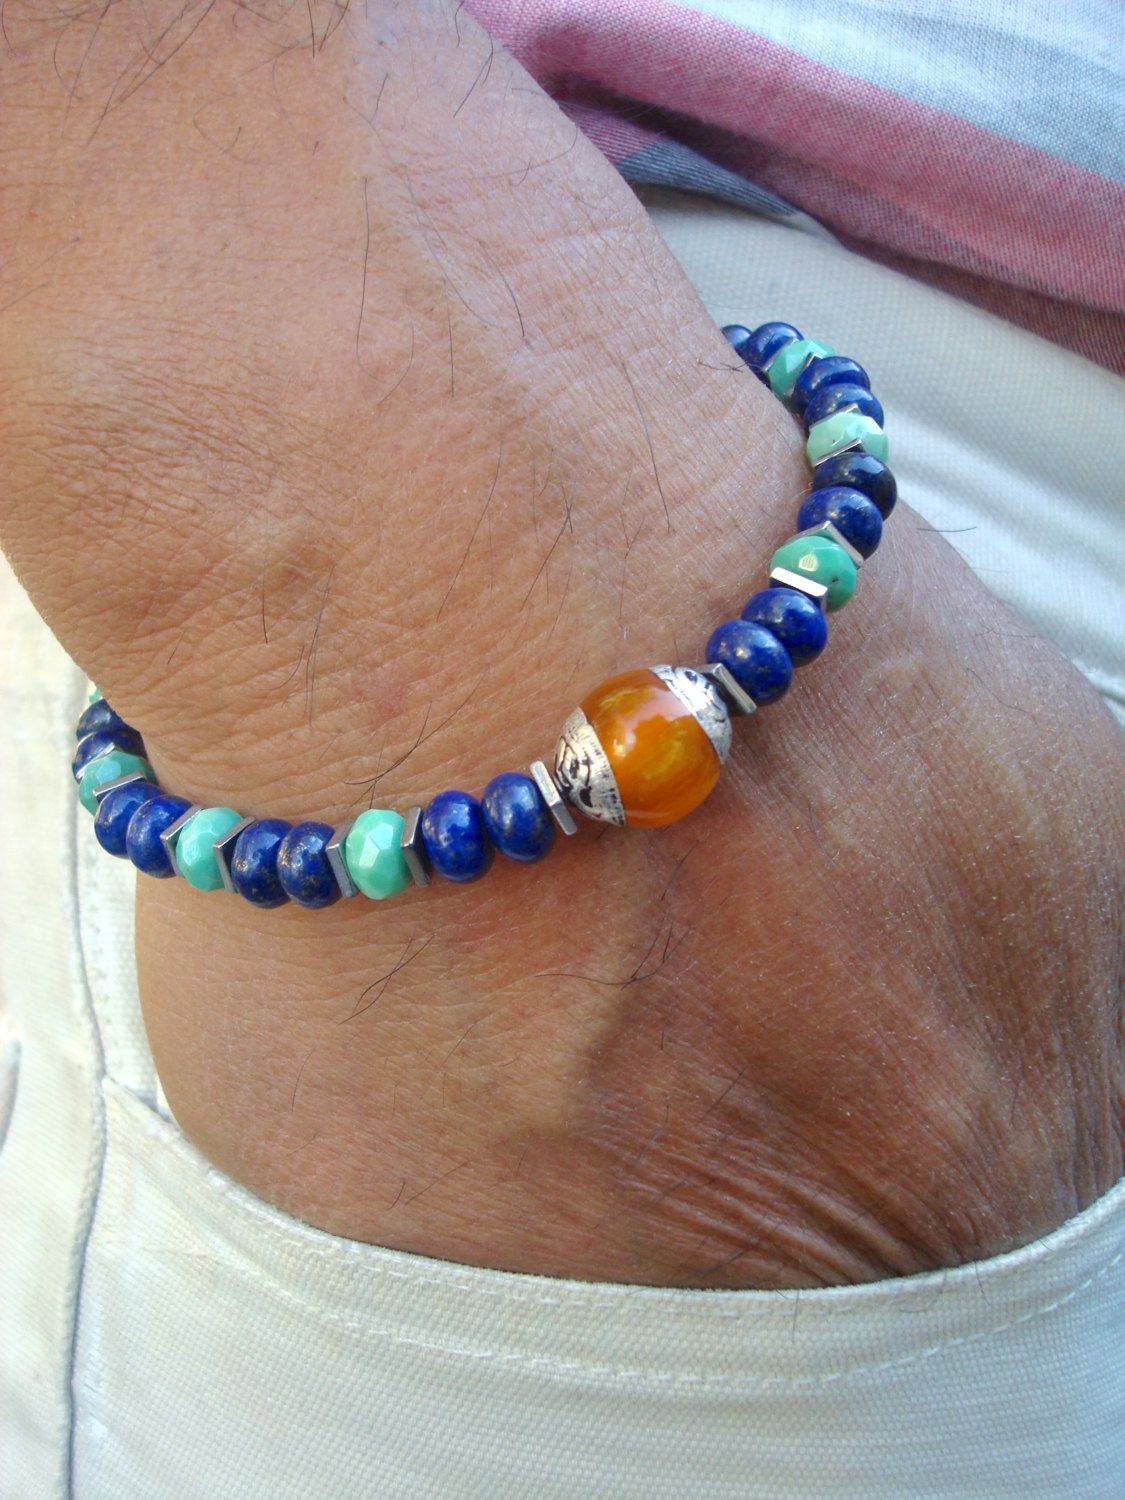 Menus spiritual healing protection friendship bracelet semi